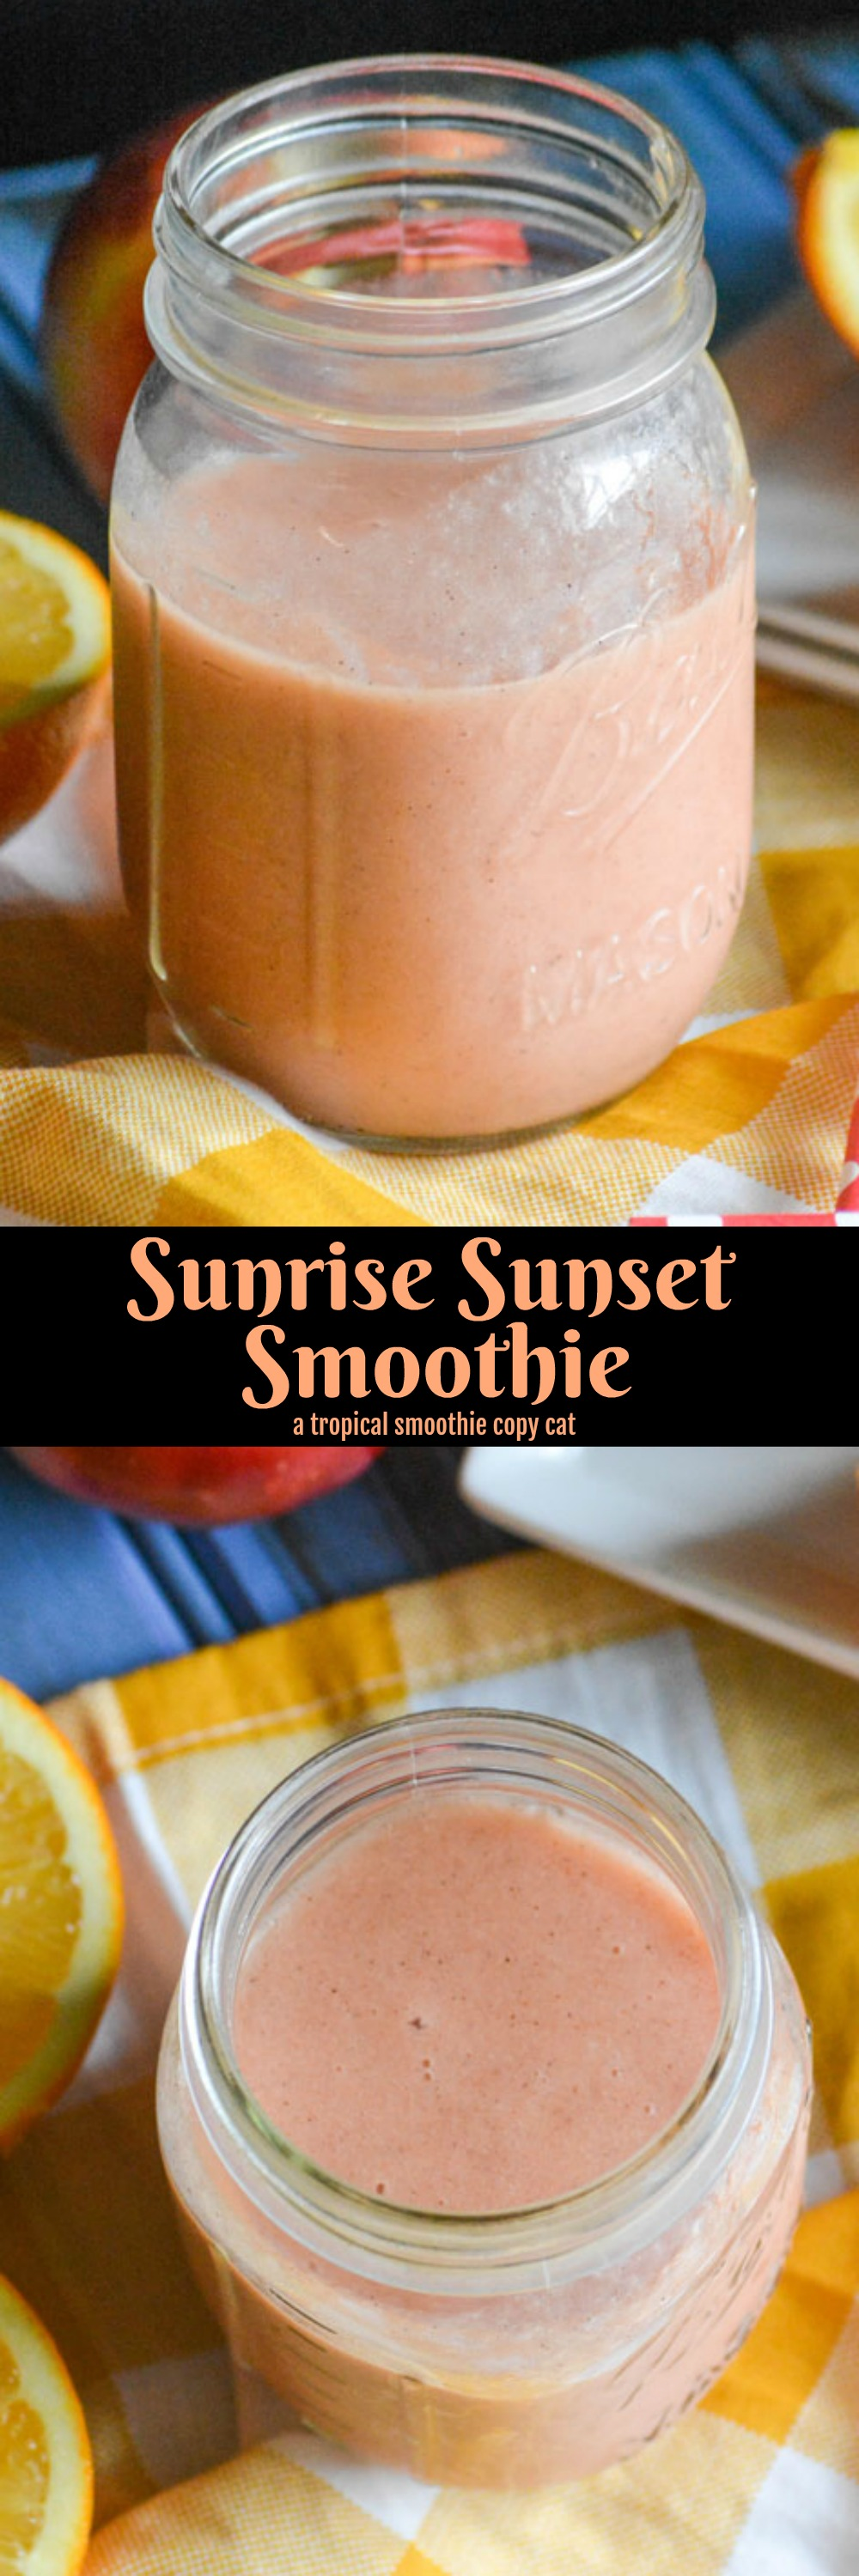 A quick and easy treat, featuring plenty of healthy fruit, this Copycat Tropical Smoothie Sunrise Sunset Smoothie is a spot on duplicate of your favorite cafe's frozen treat. An indulgent breakfast to share, a perfect dessert, even a special snack- this smoothie is what sweet memories are made of!